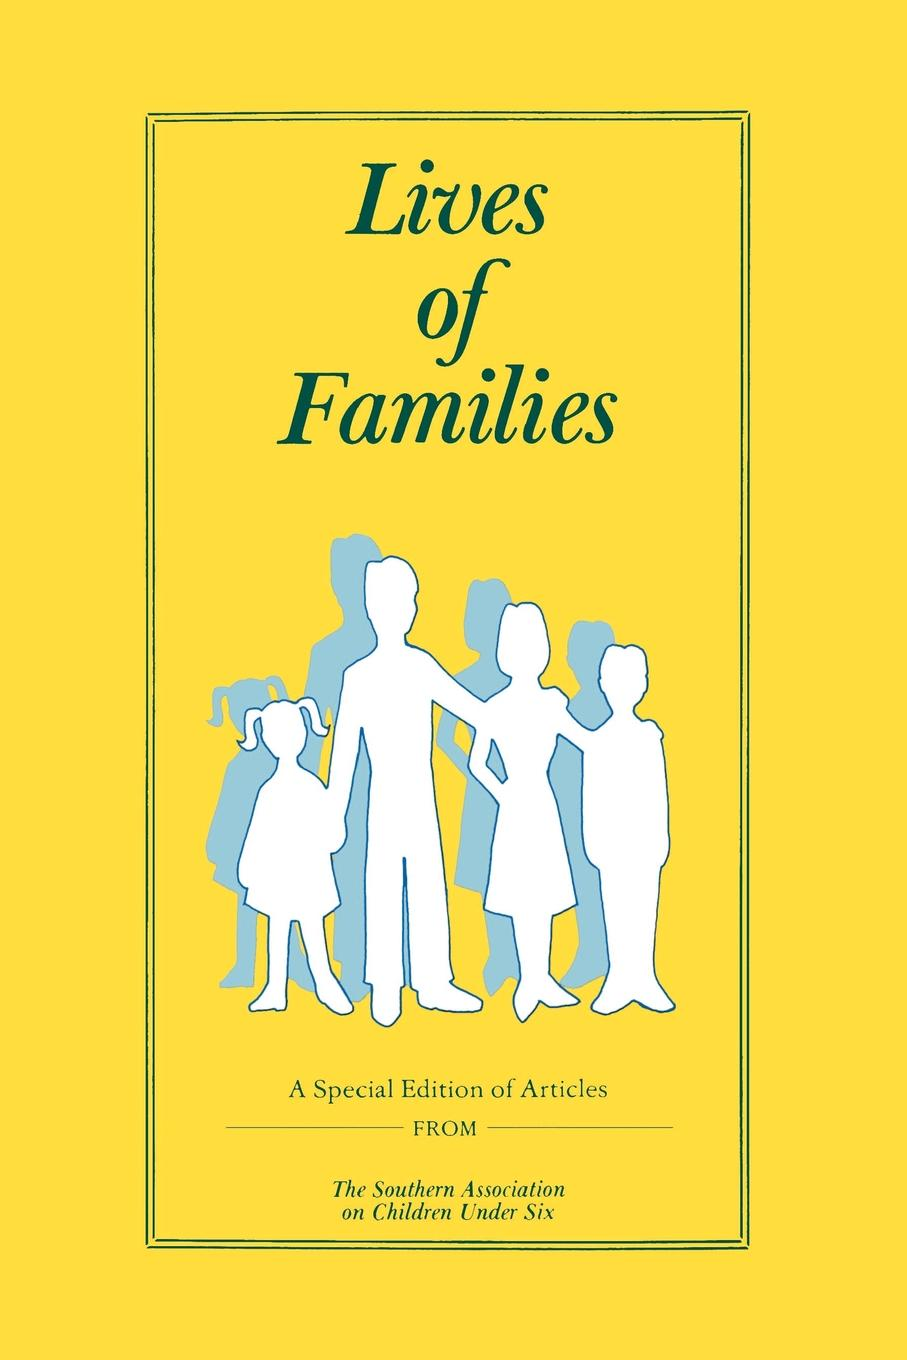 Lives of Families